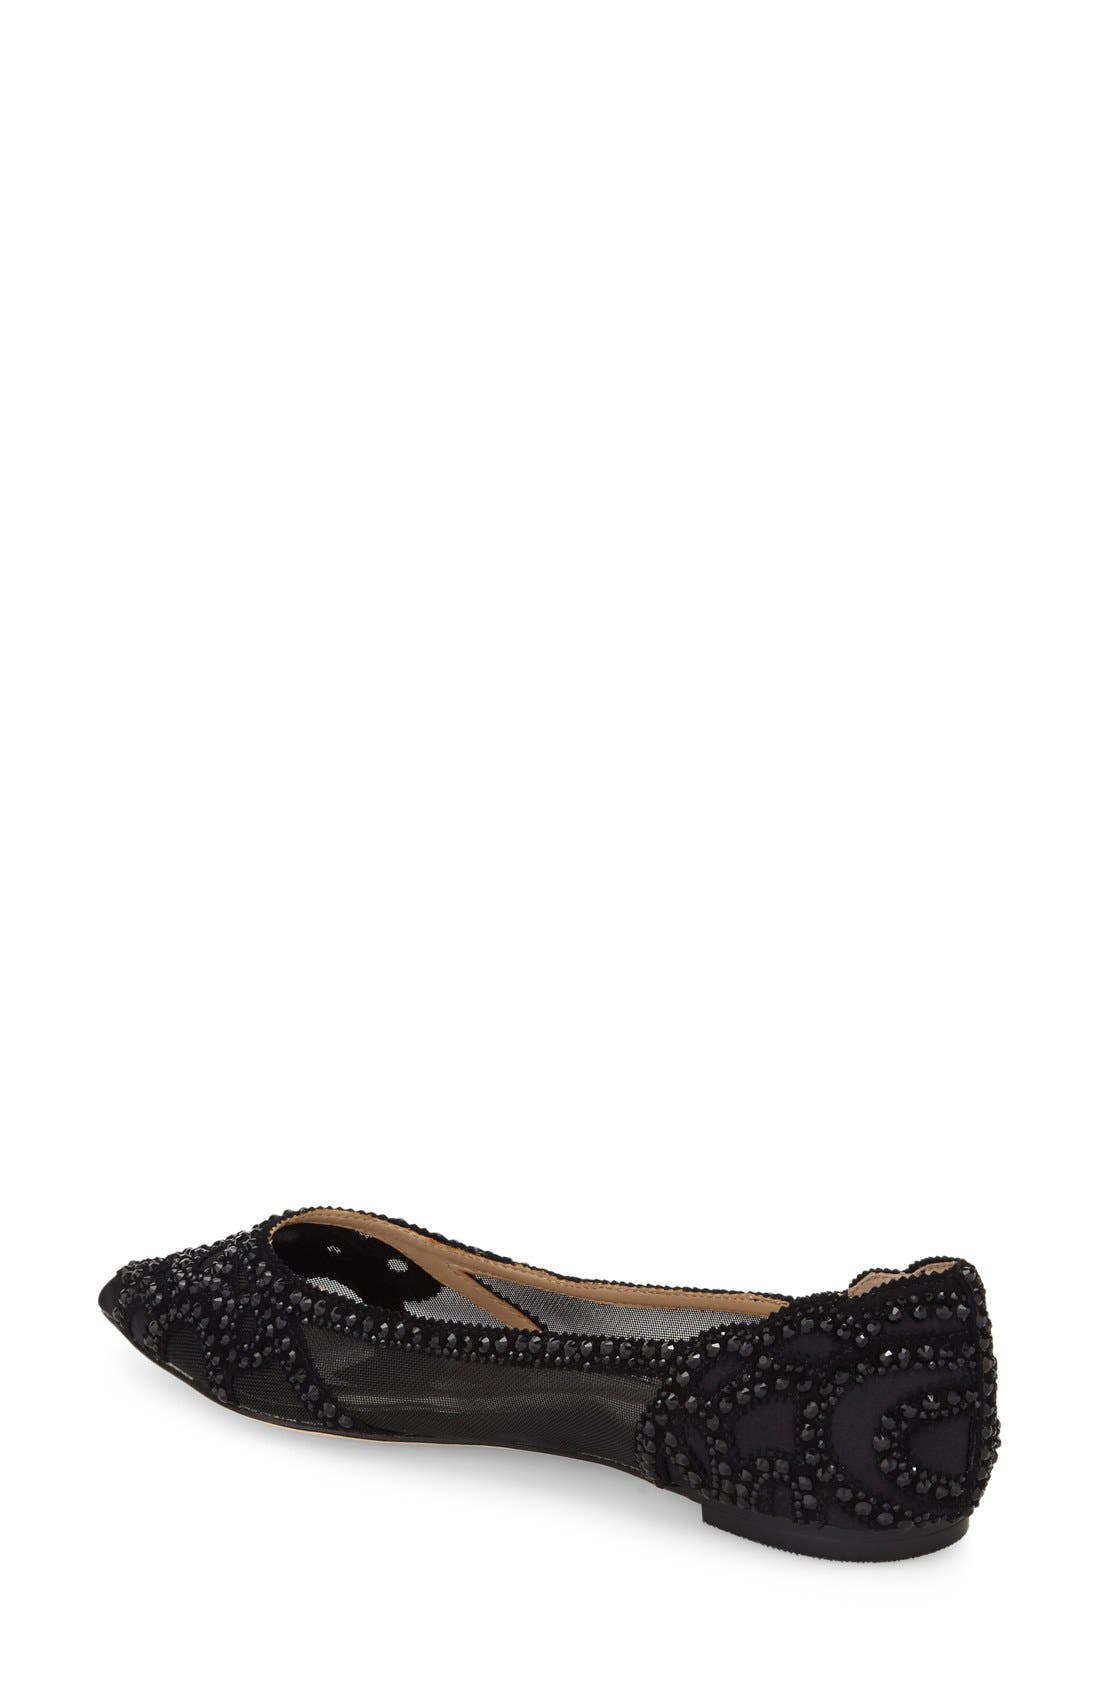 Gigi Crystal Pointy Toe Flat,                             Alternate thumbnail 3, color,                             BLACK SATIN